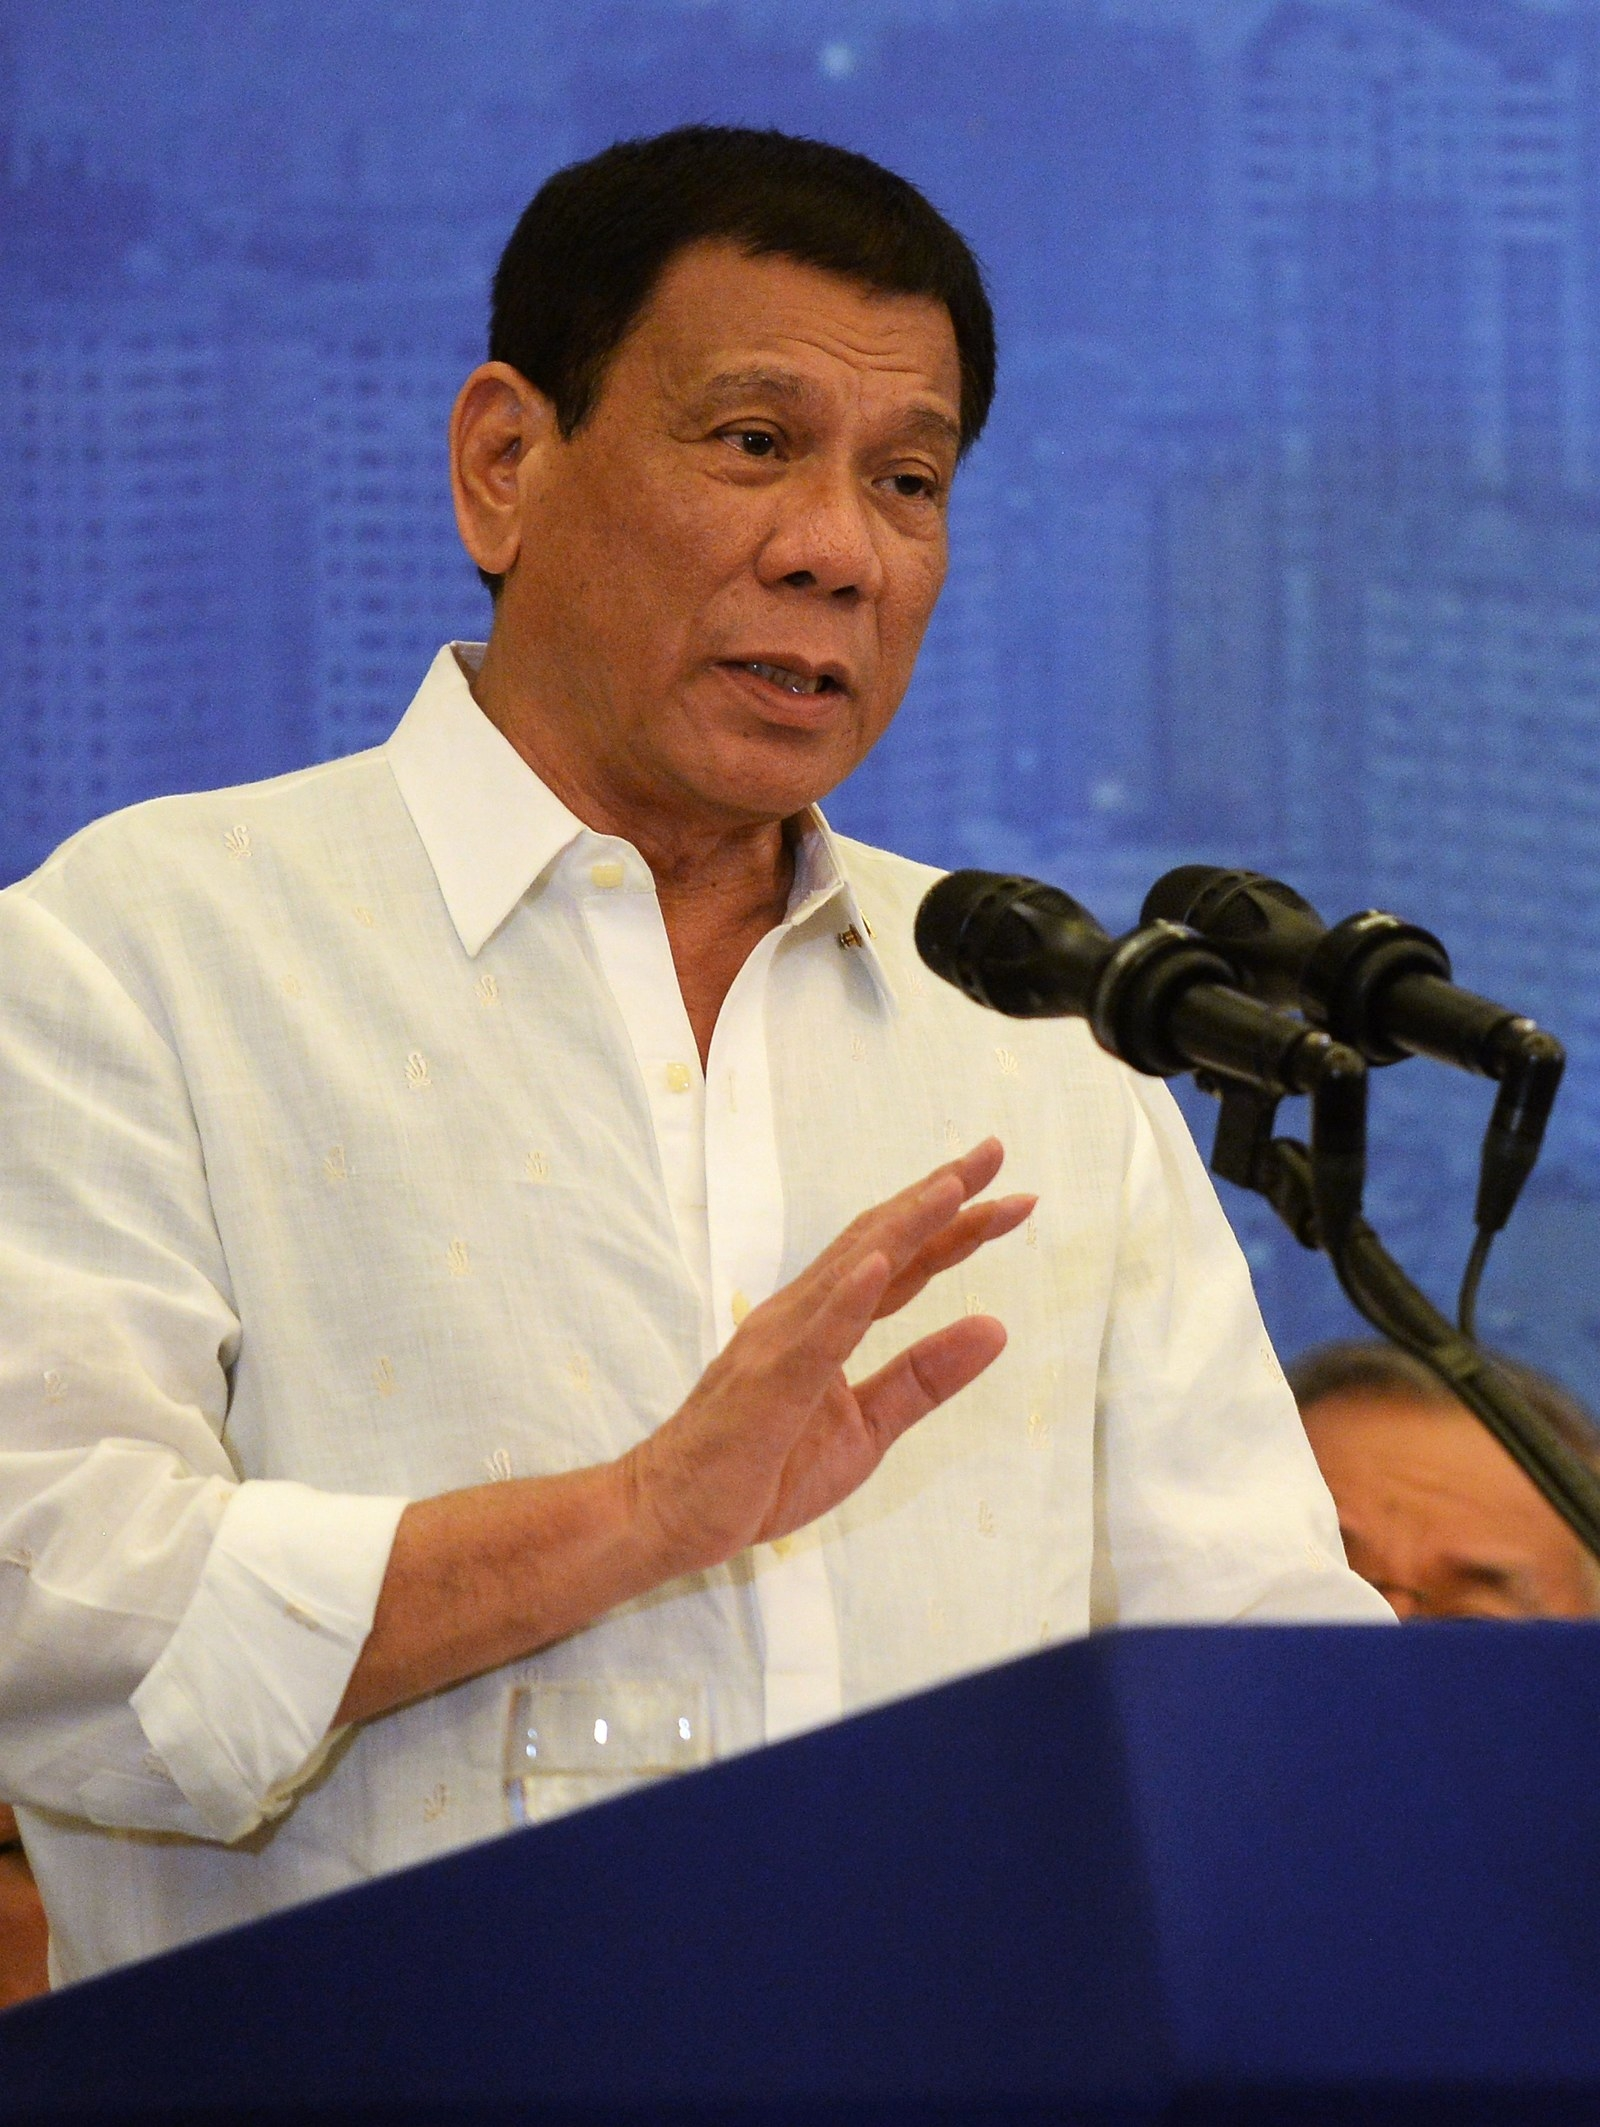 """Philippines President Compares Himself To Hitler, Says He'd """"Be Happy To Slaughter"""" 3 Million Drug Users"""